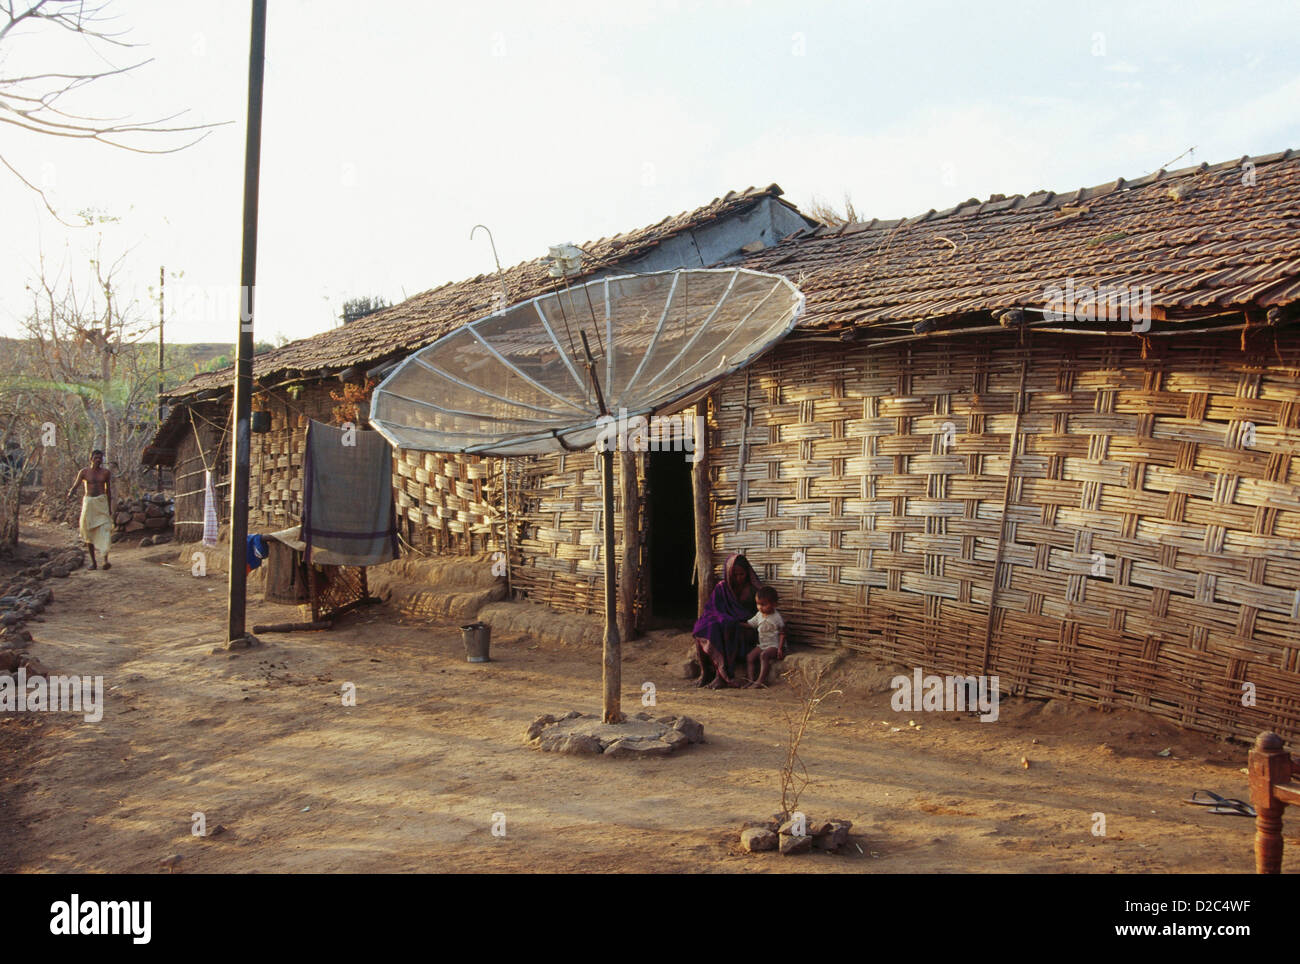 Dish Antenna Fixed In Village, Nandurbar, Maharashtra, India - Stock Image